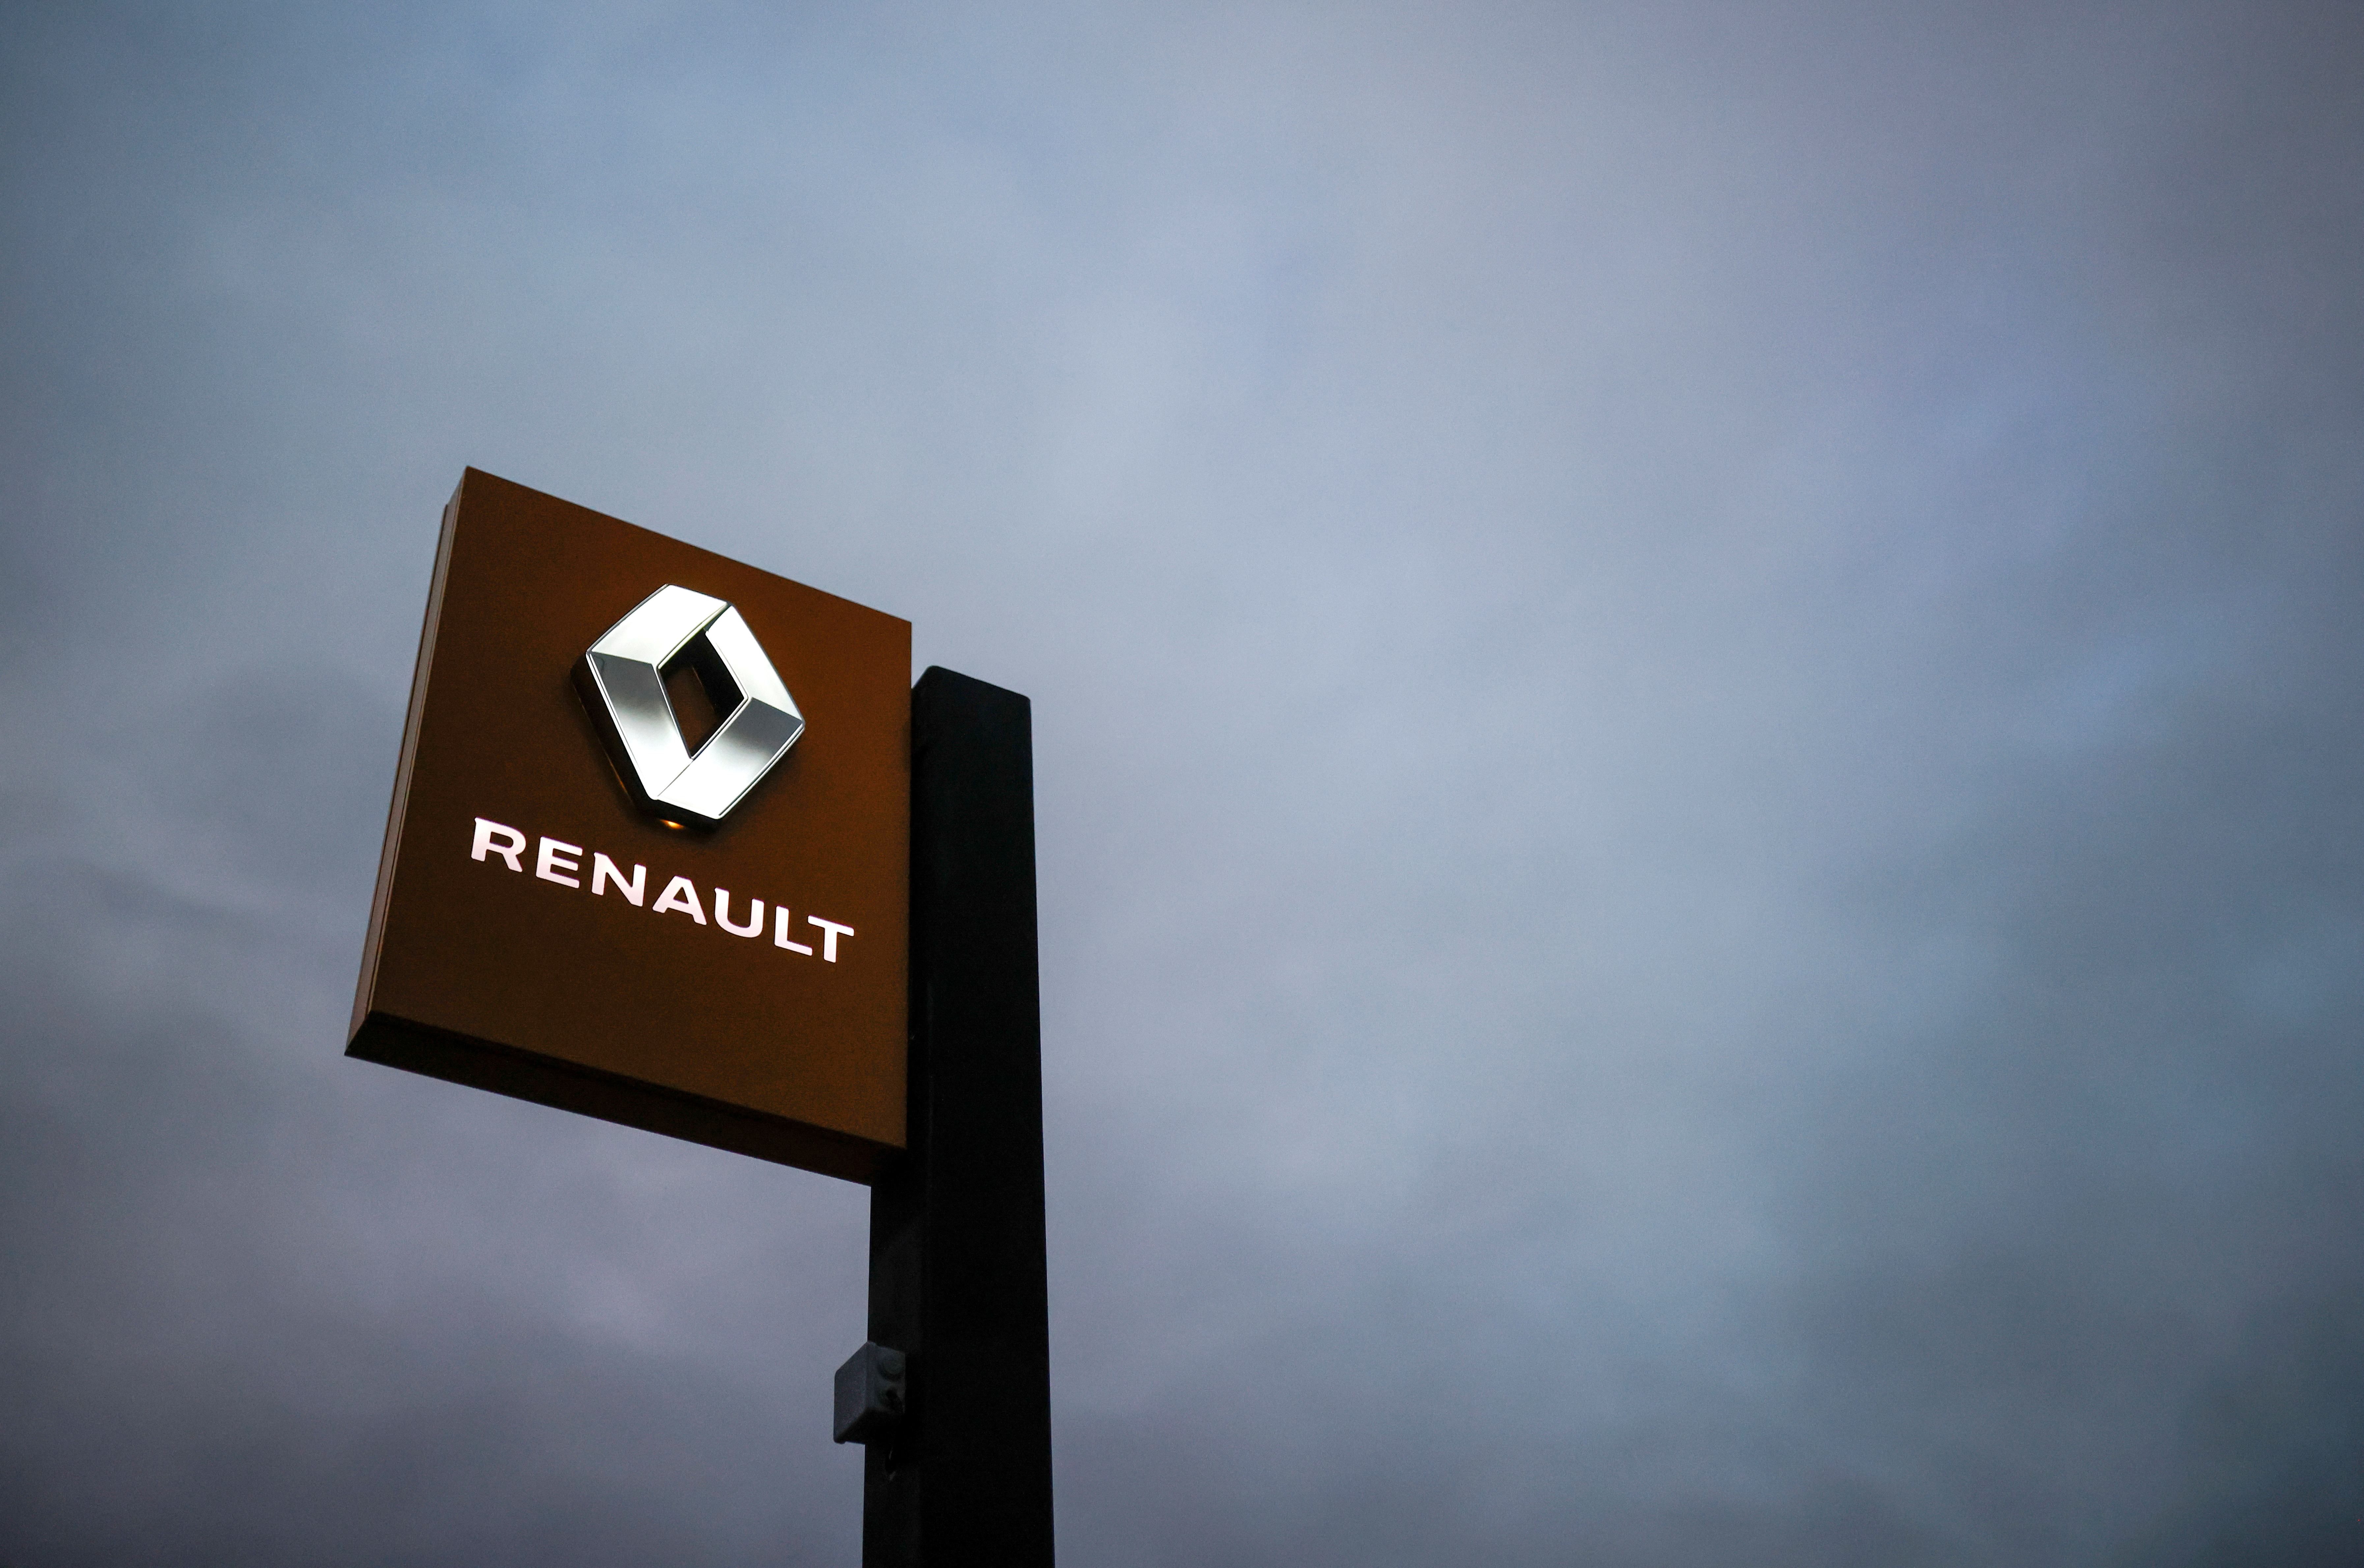 The logo of Renault carmaker is pictured at a dealership in Vertou, near Nantes, France, January 13, 2021. REUTERS/Stephane Mahe